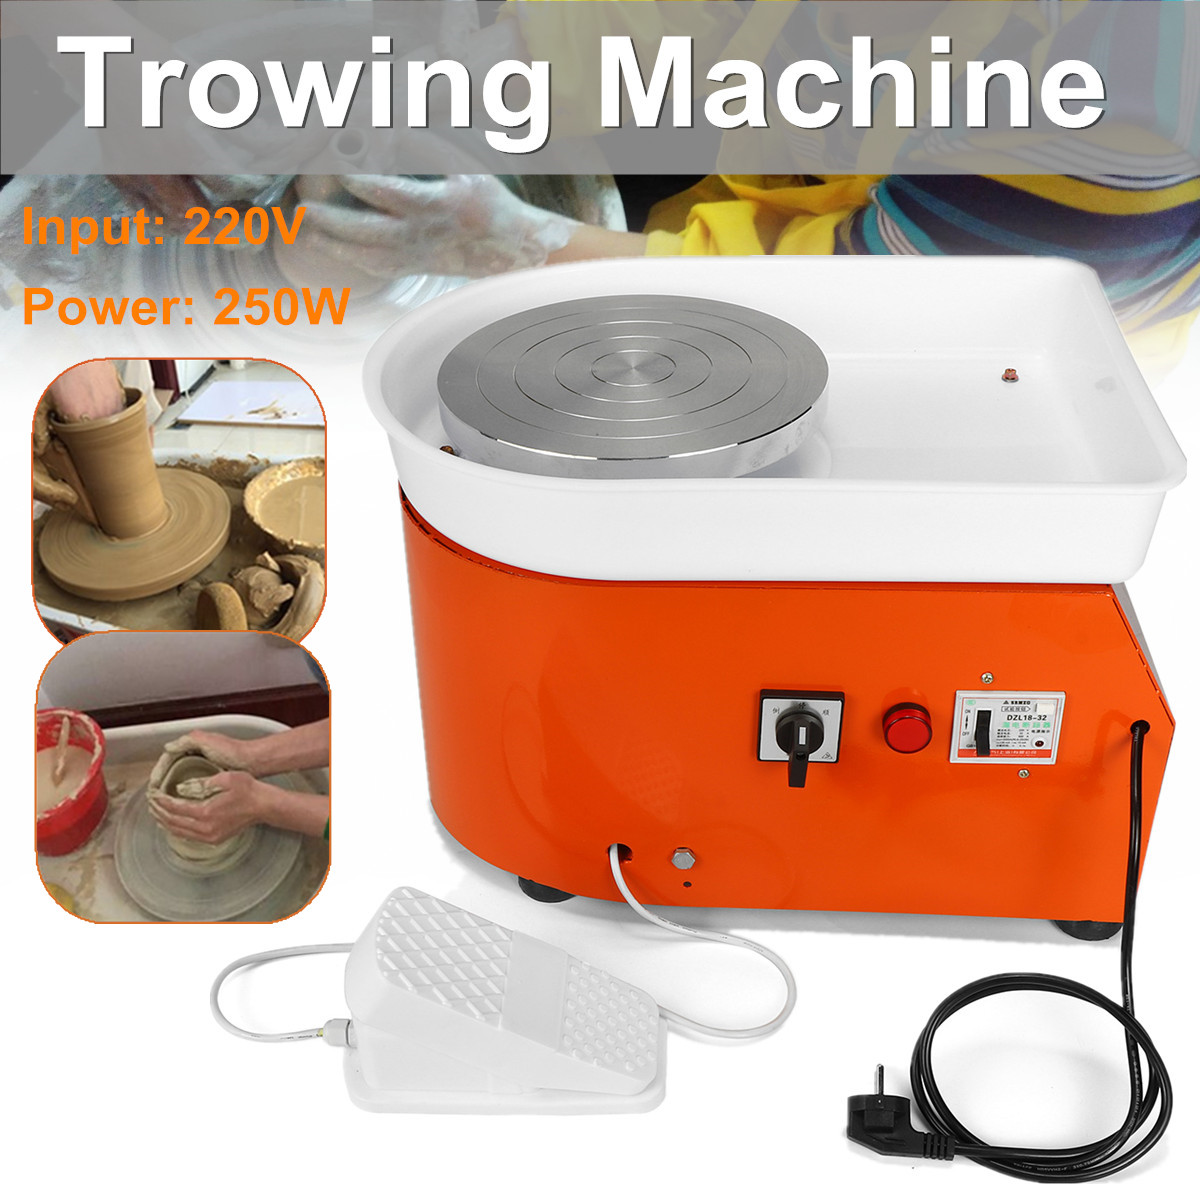 25cm Pottery Wheel Machine EU/AU AC220V 250-350W Ceramic Work Ceramics Clay Art With Mobile Flexible Foot Pedal Smooth Low Noise 25cm 350w pottery wheel pottery diy clay machine for ceramic work ceramics clay 220v children learning machine